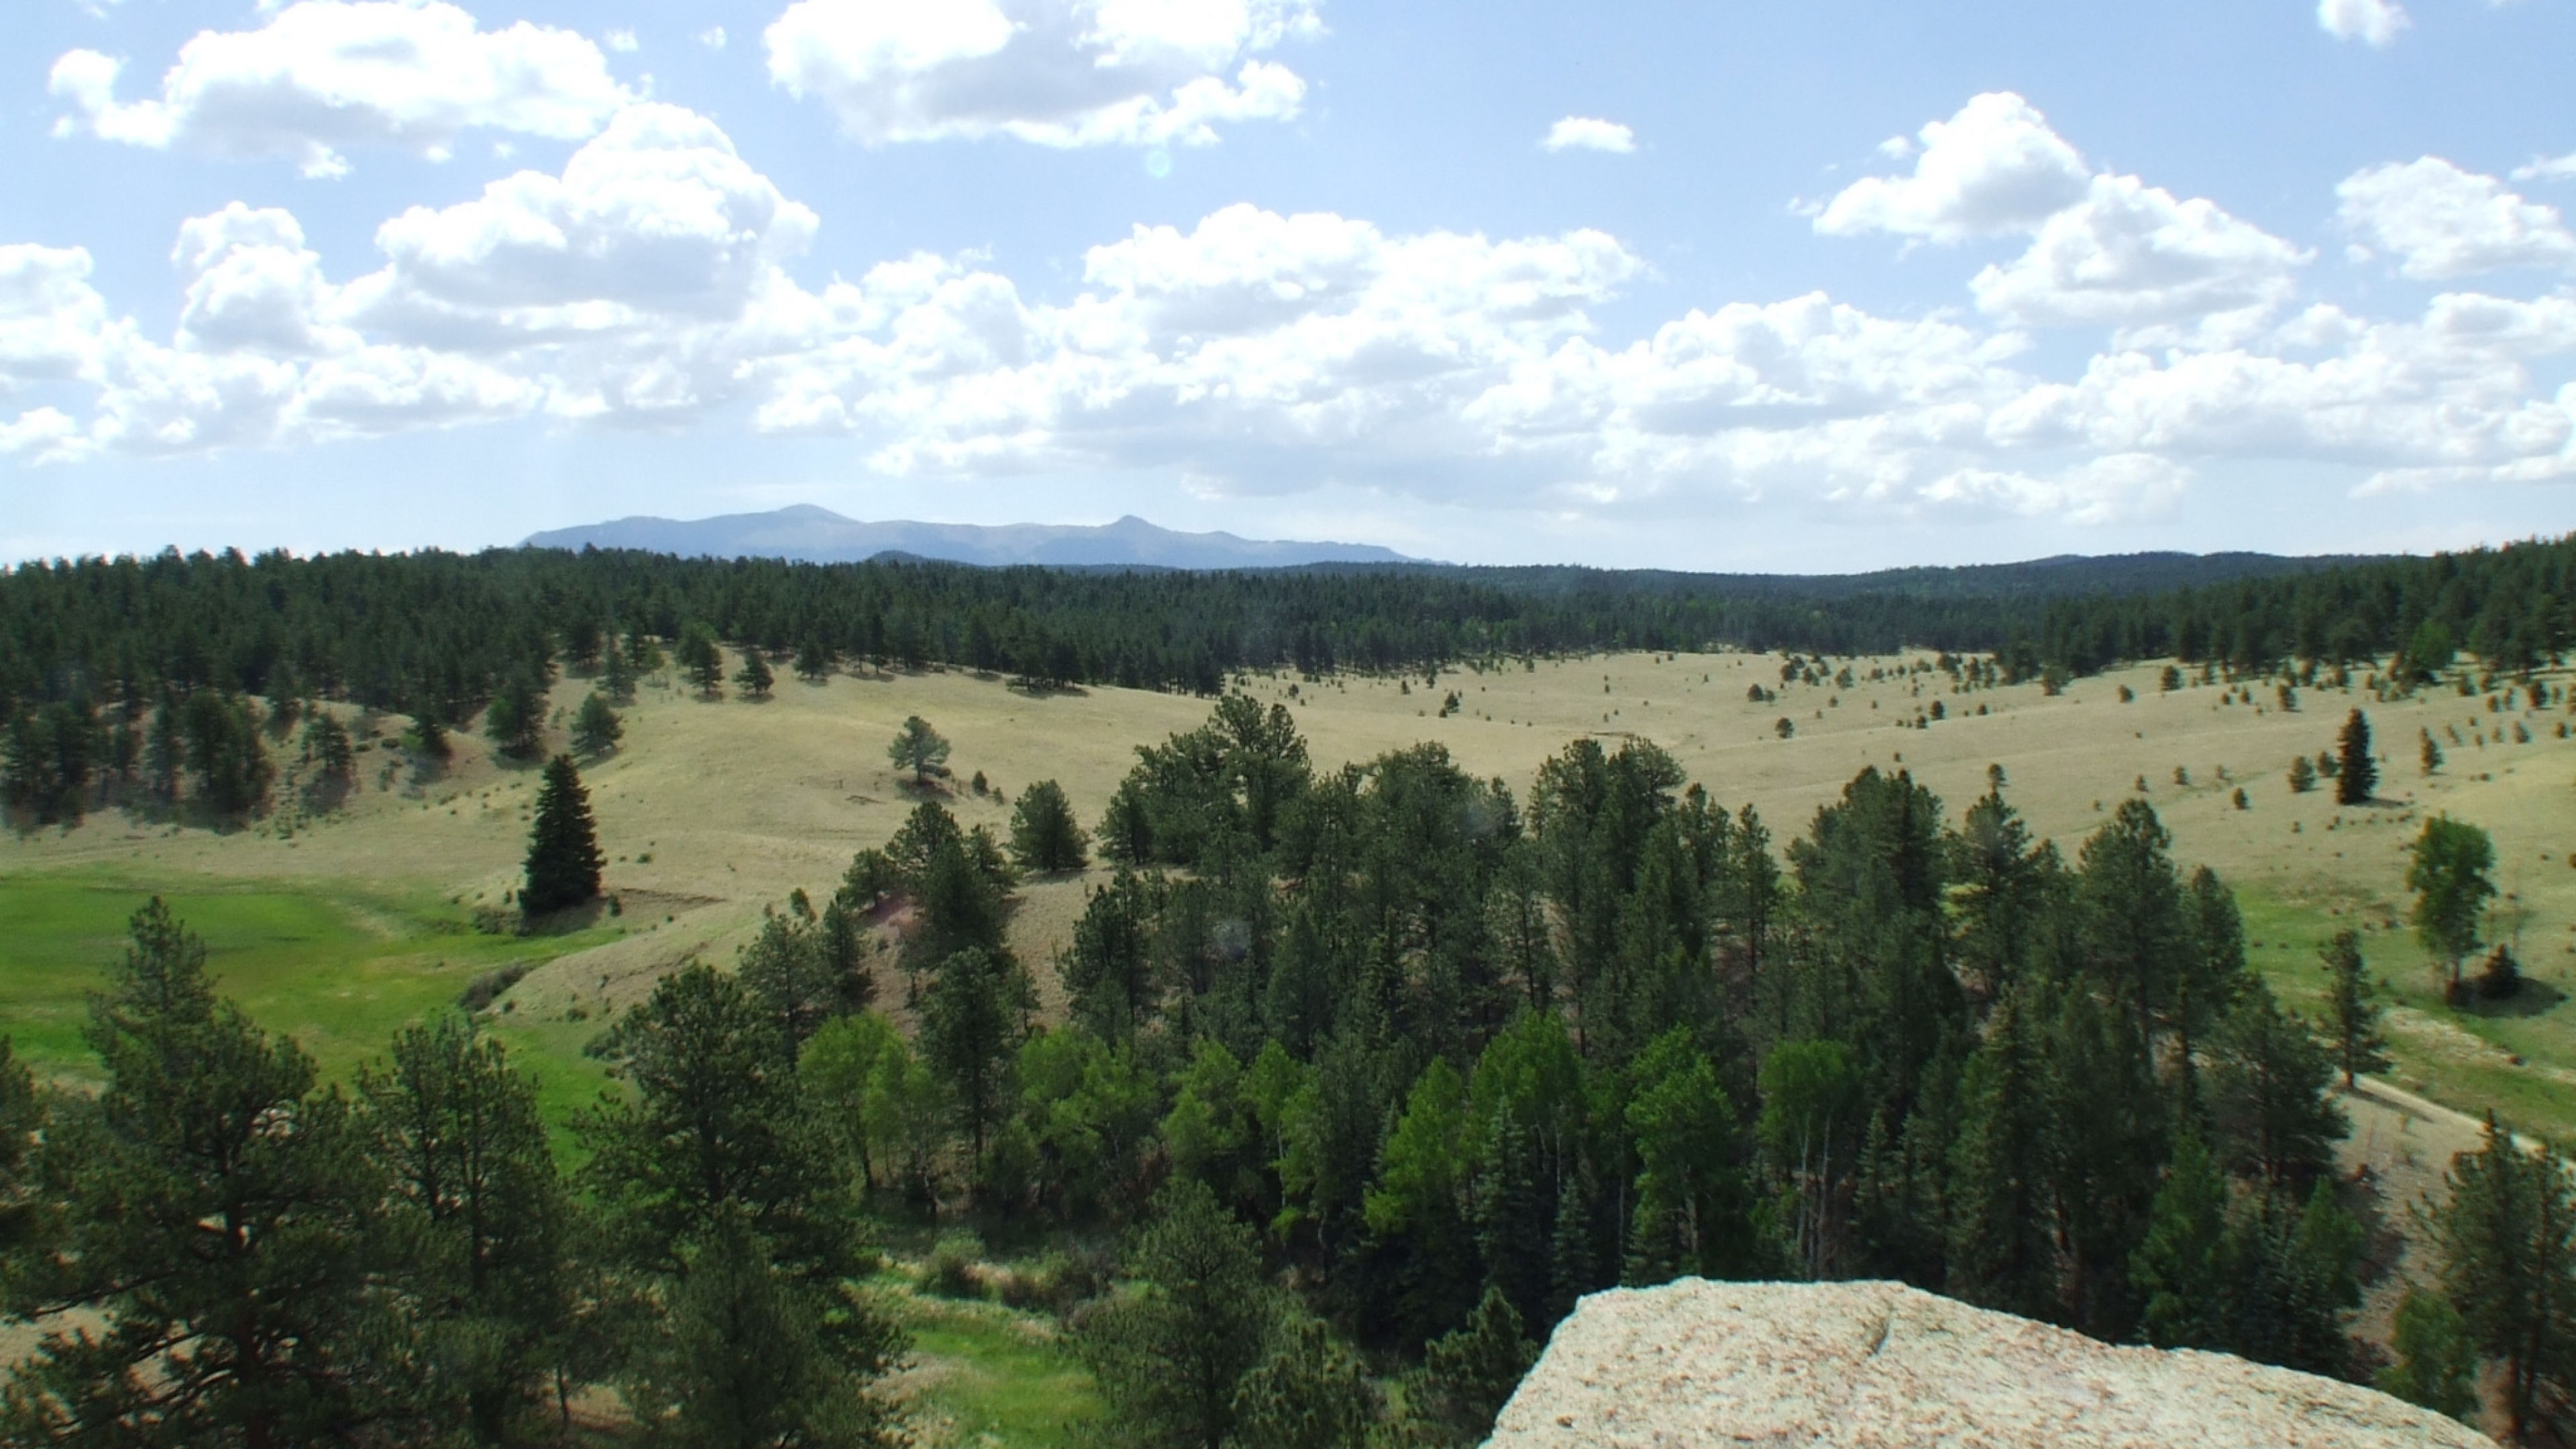 View from Twin Rock down onto the green meadows and evergreen trees under a blue sky at Florrisant Fossil Beds National Monument